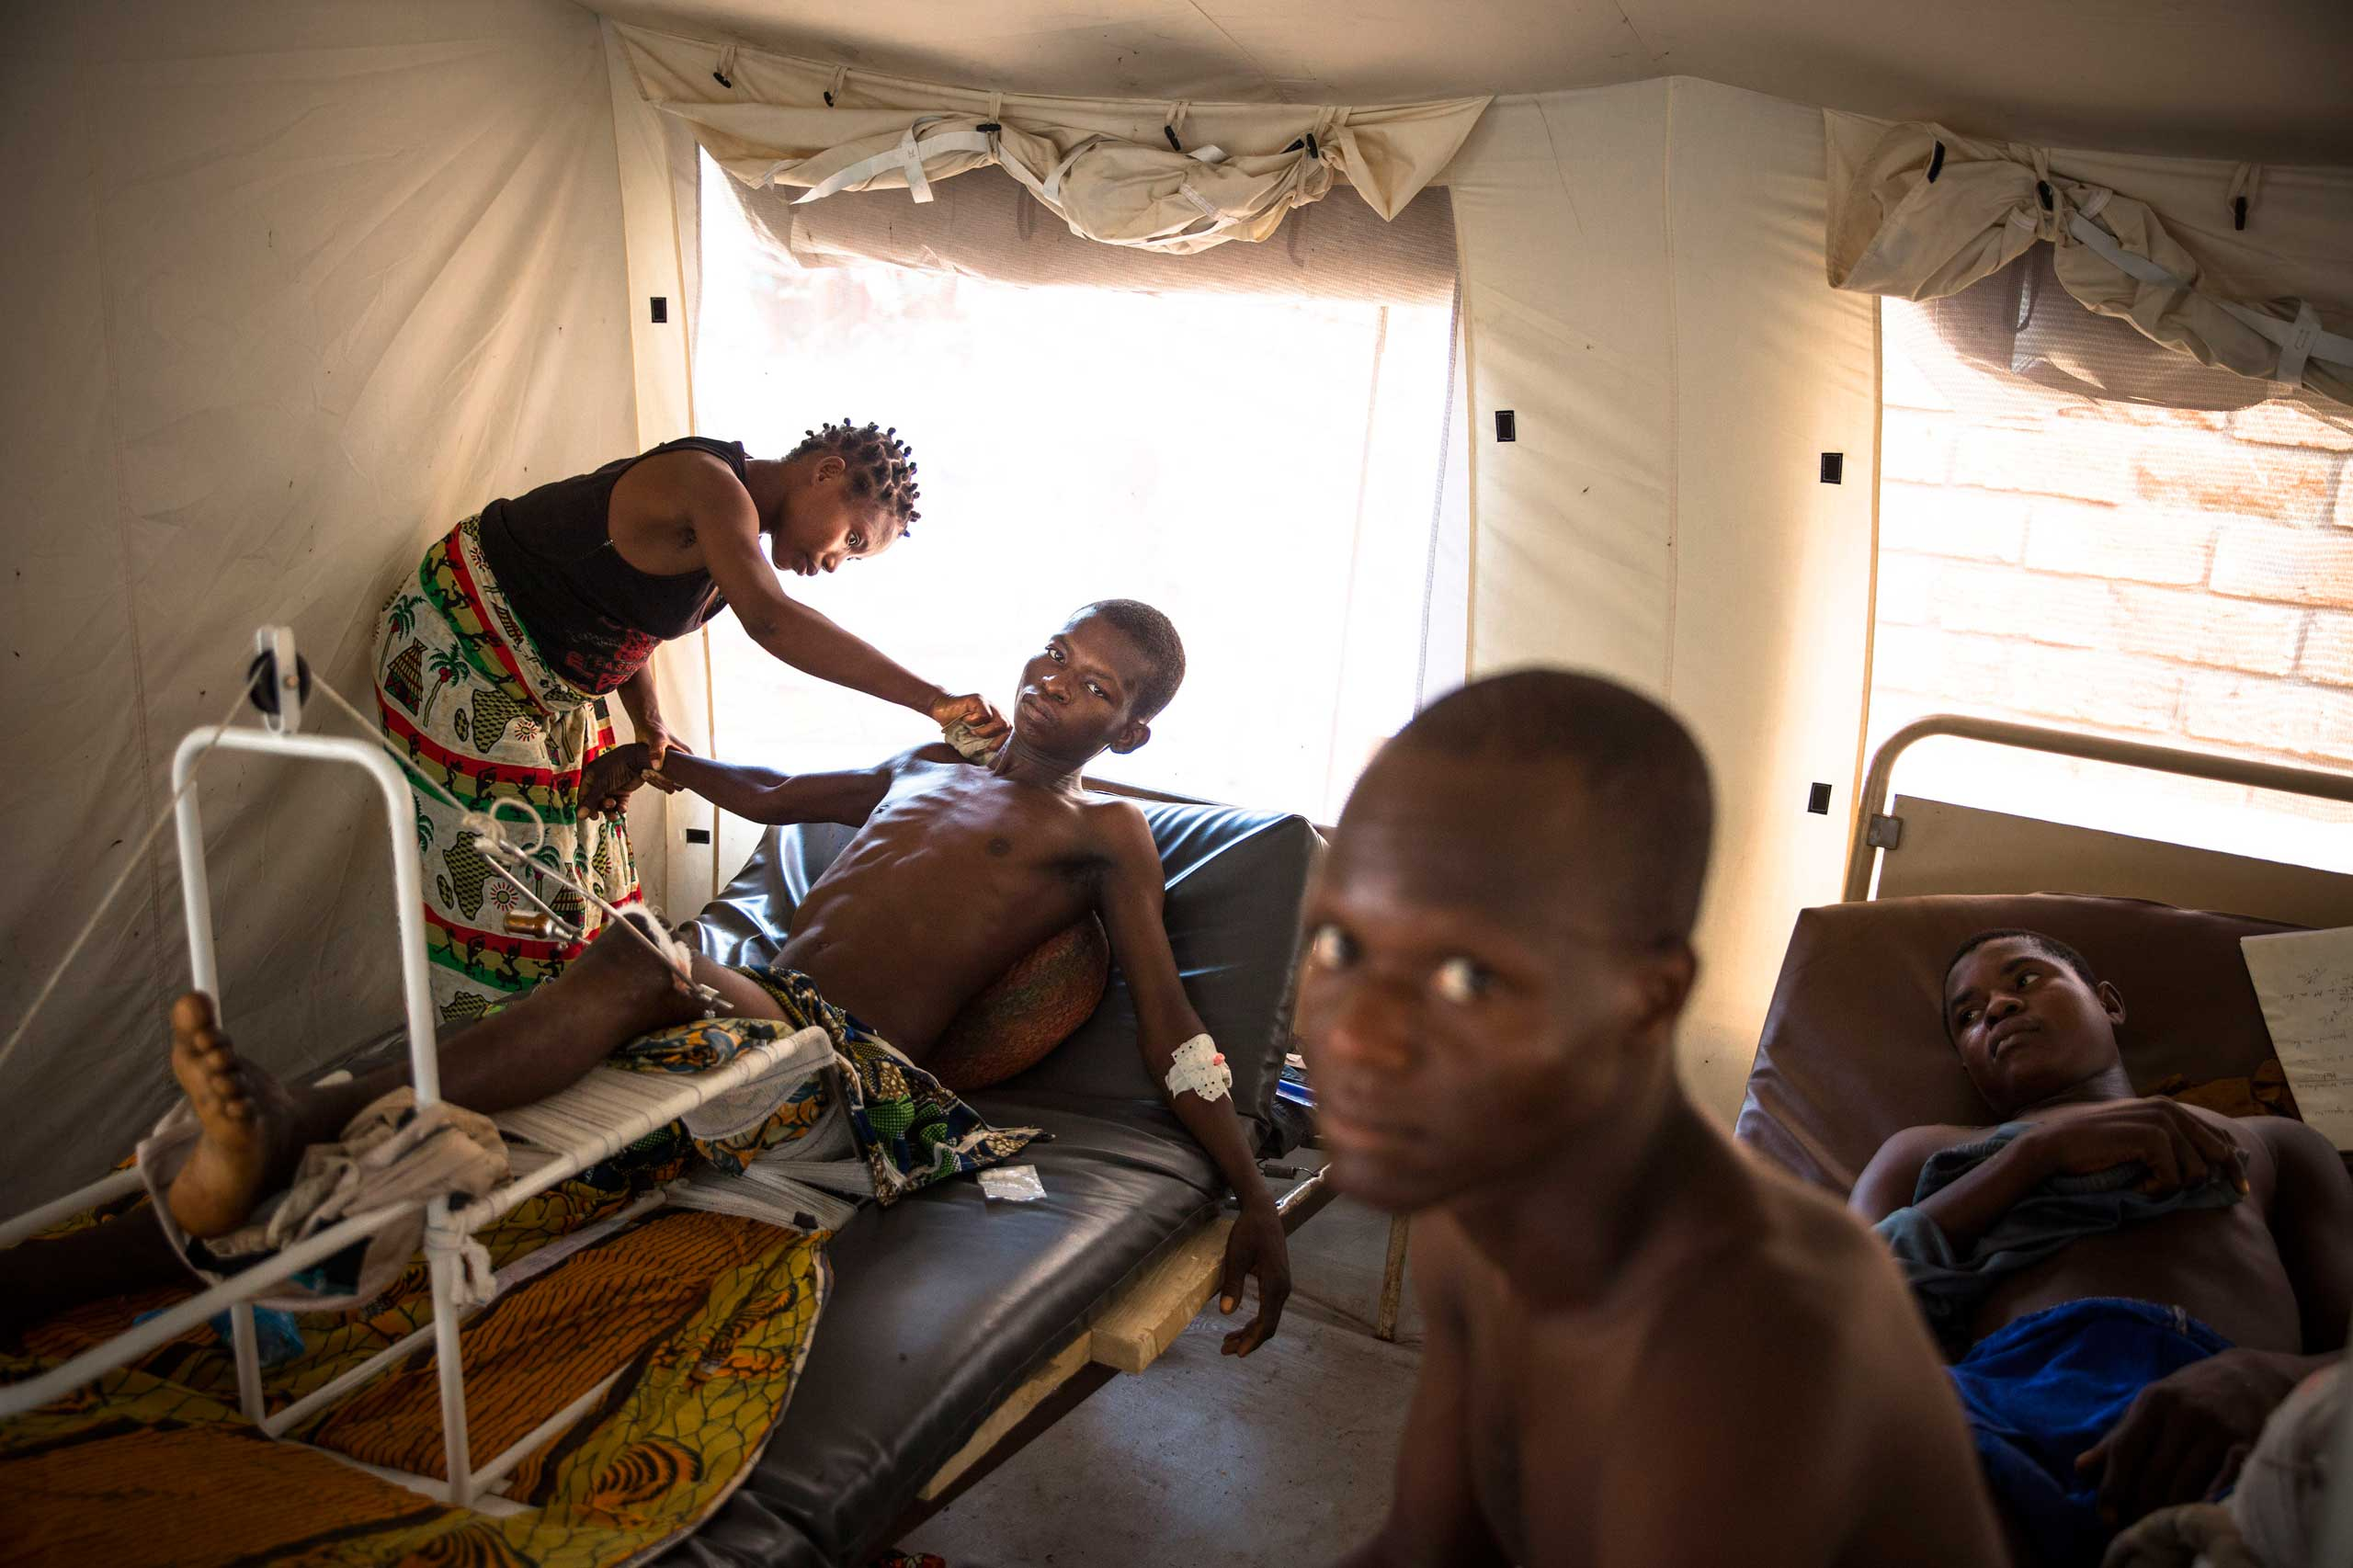 Jan. 31, 2014: A man wounded during previous days of fighting between Christians and Muslims is washed by his wife in a tent in Bangui's community hospital.